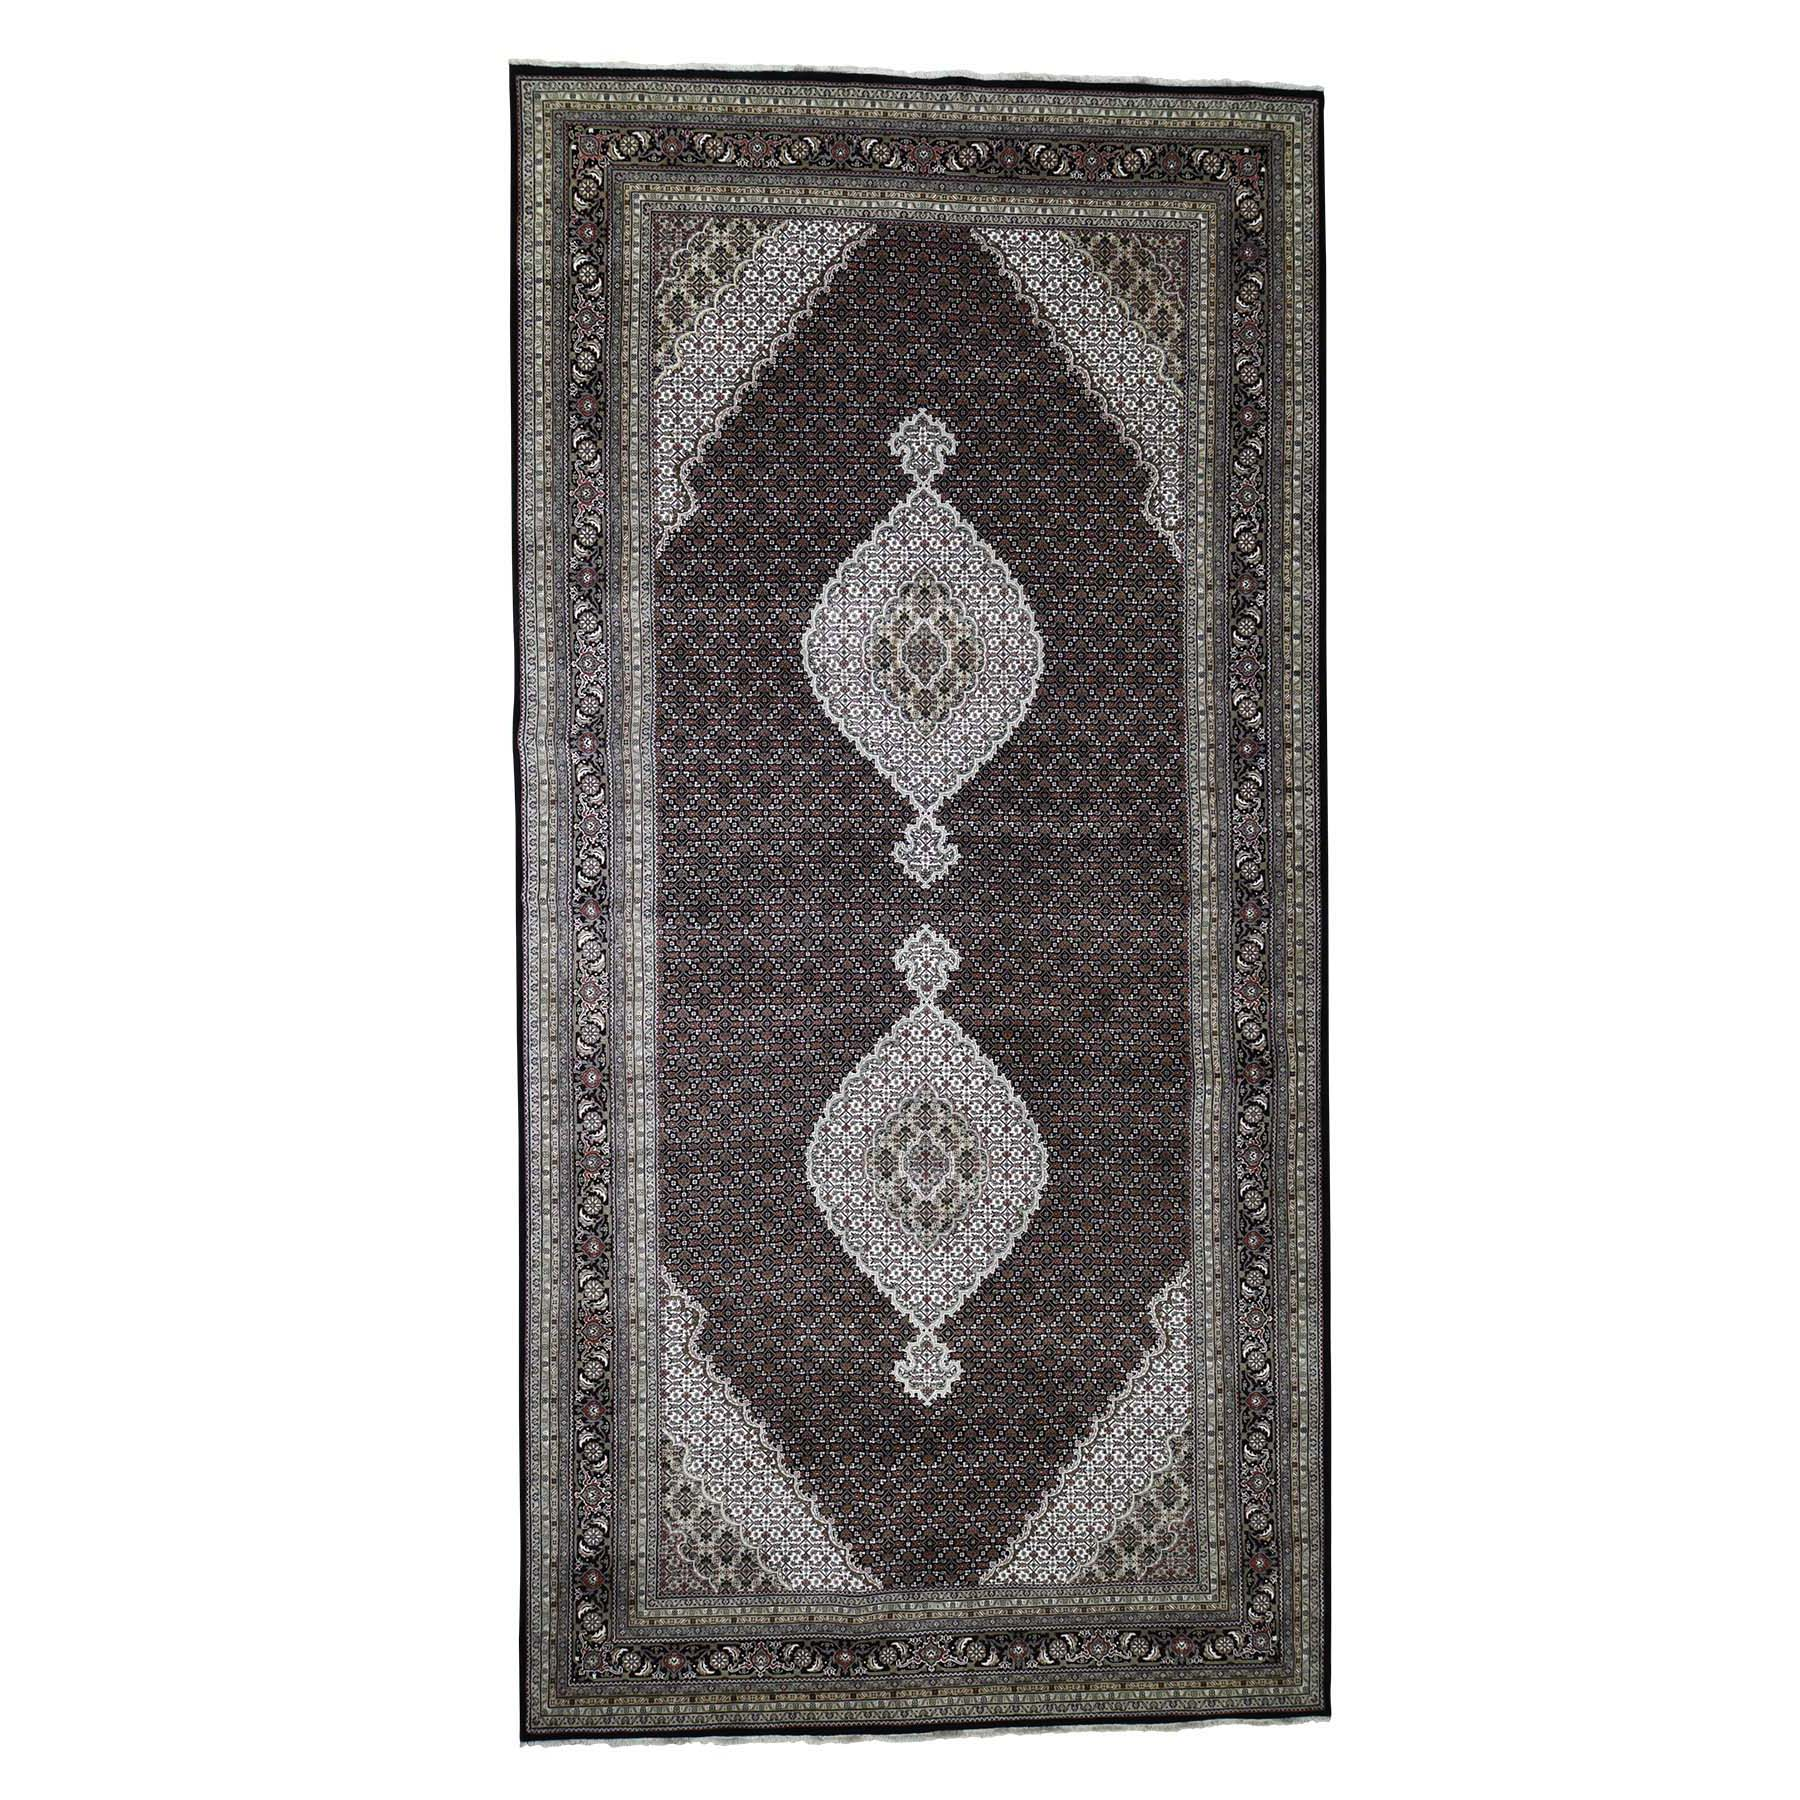 Pirniakan Collection Hand Knotted Black Rug No: 0188314